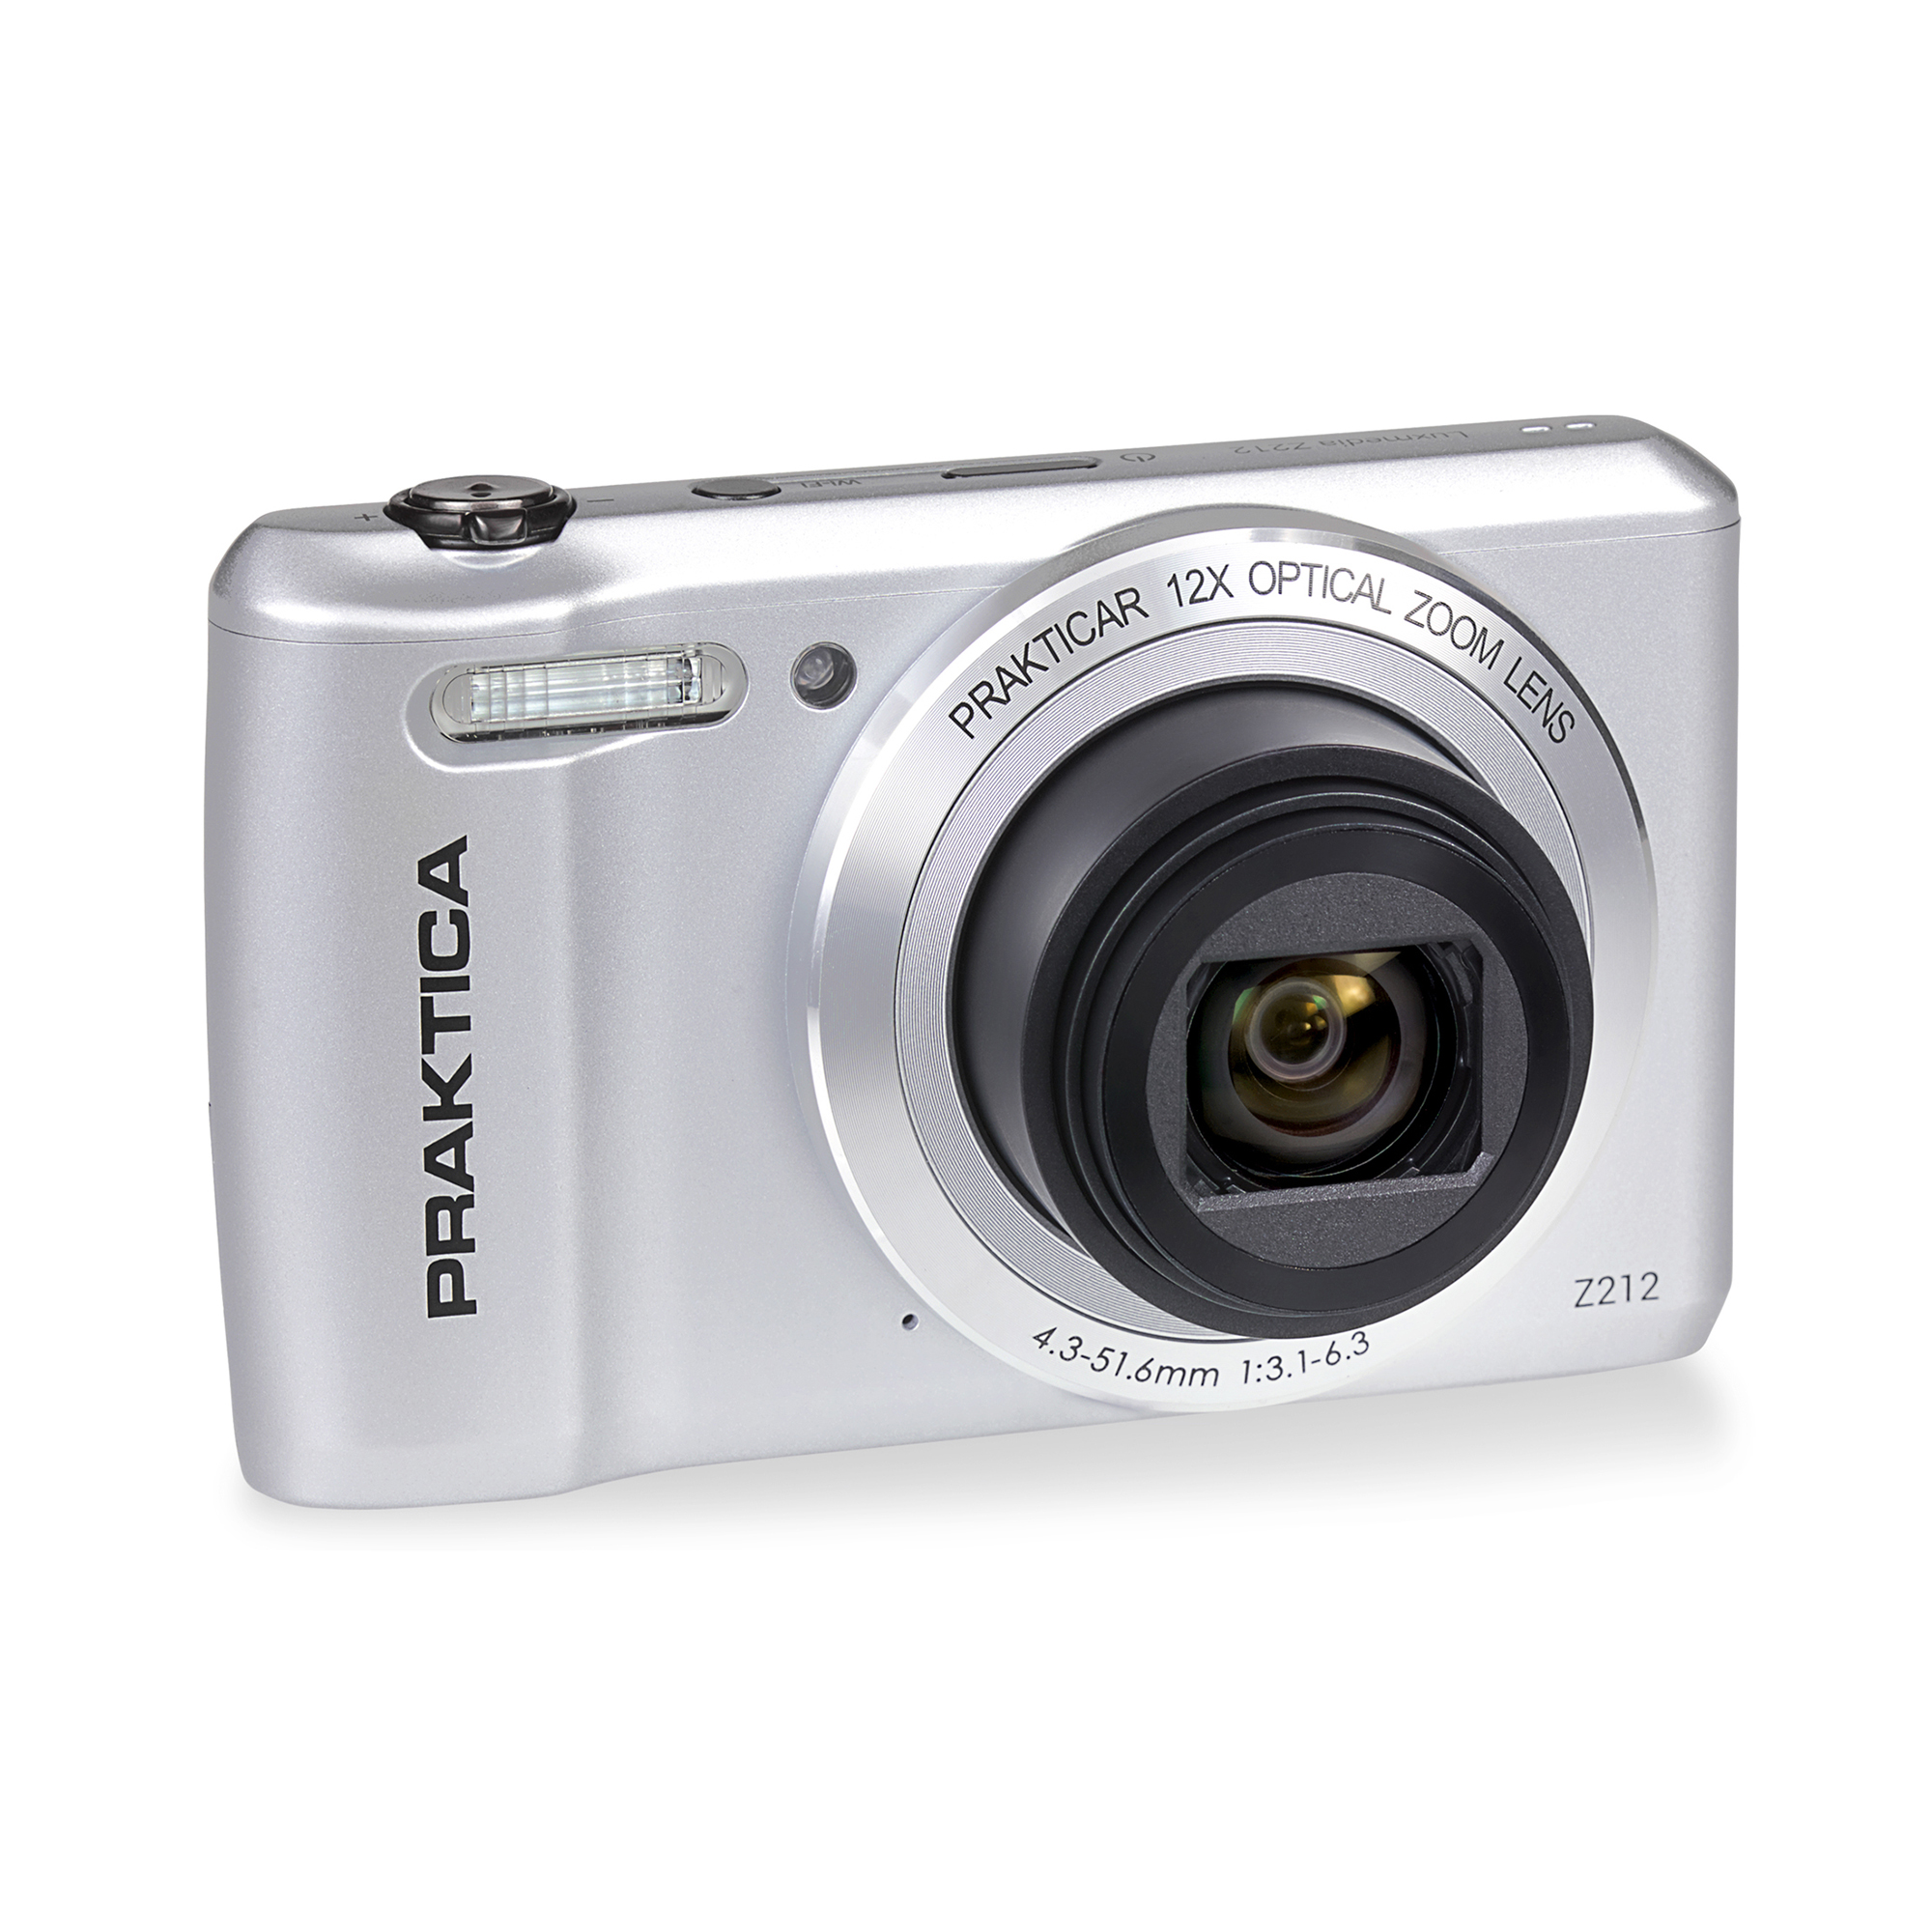 Digital cameras Praktica Z212 Digital Camera Kit 12x Optical Zoom Case & 32GB Micro SD Card Silver Ref PRA242